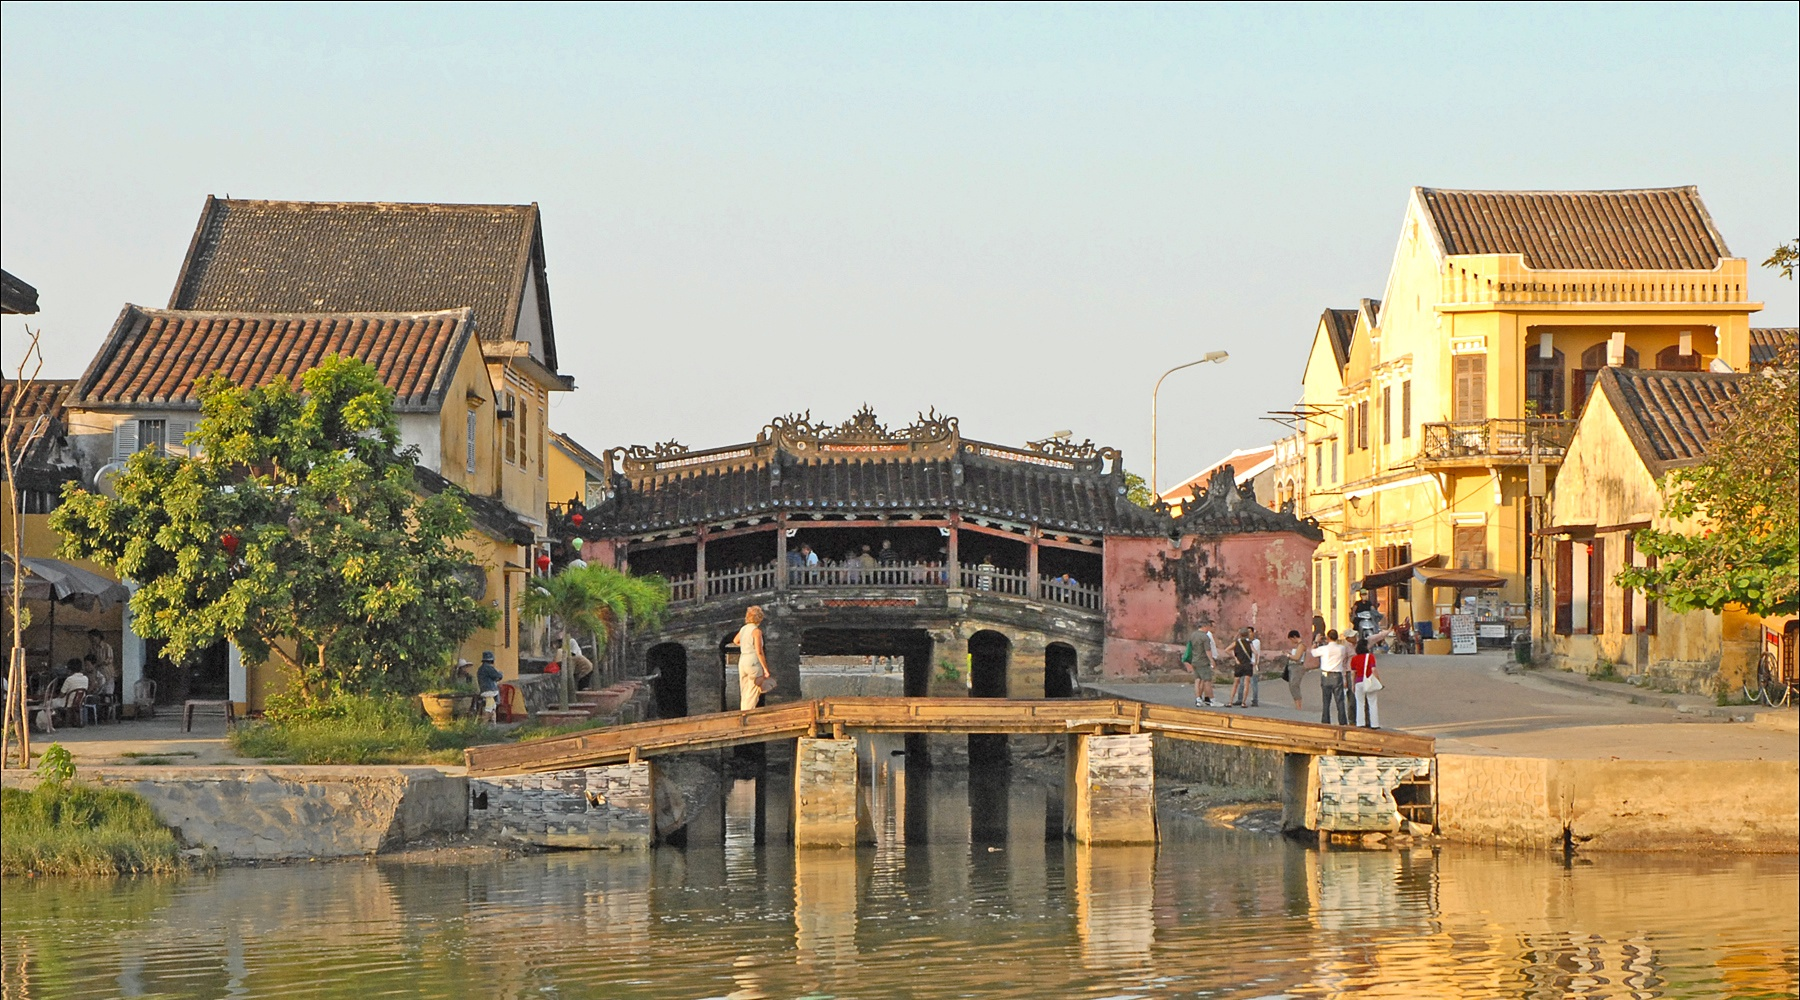 The Japanese Covered Bridge - The Legacy Of Ancient Japan In Hoi An - History